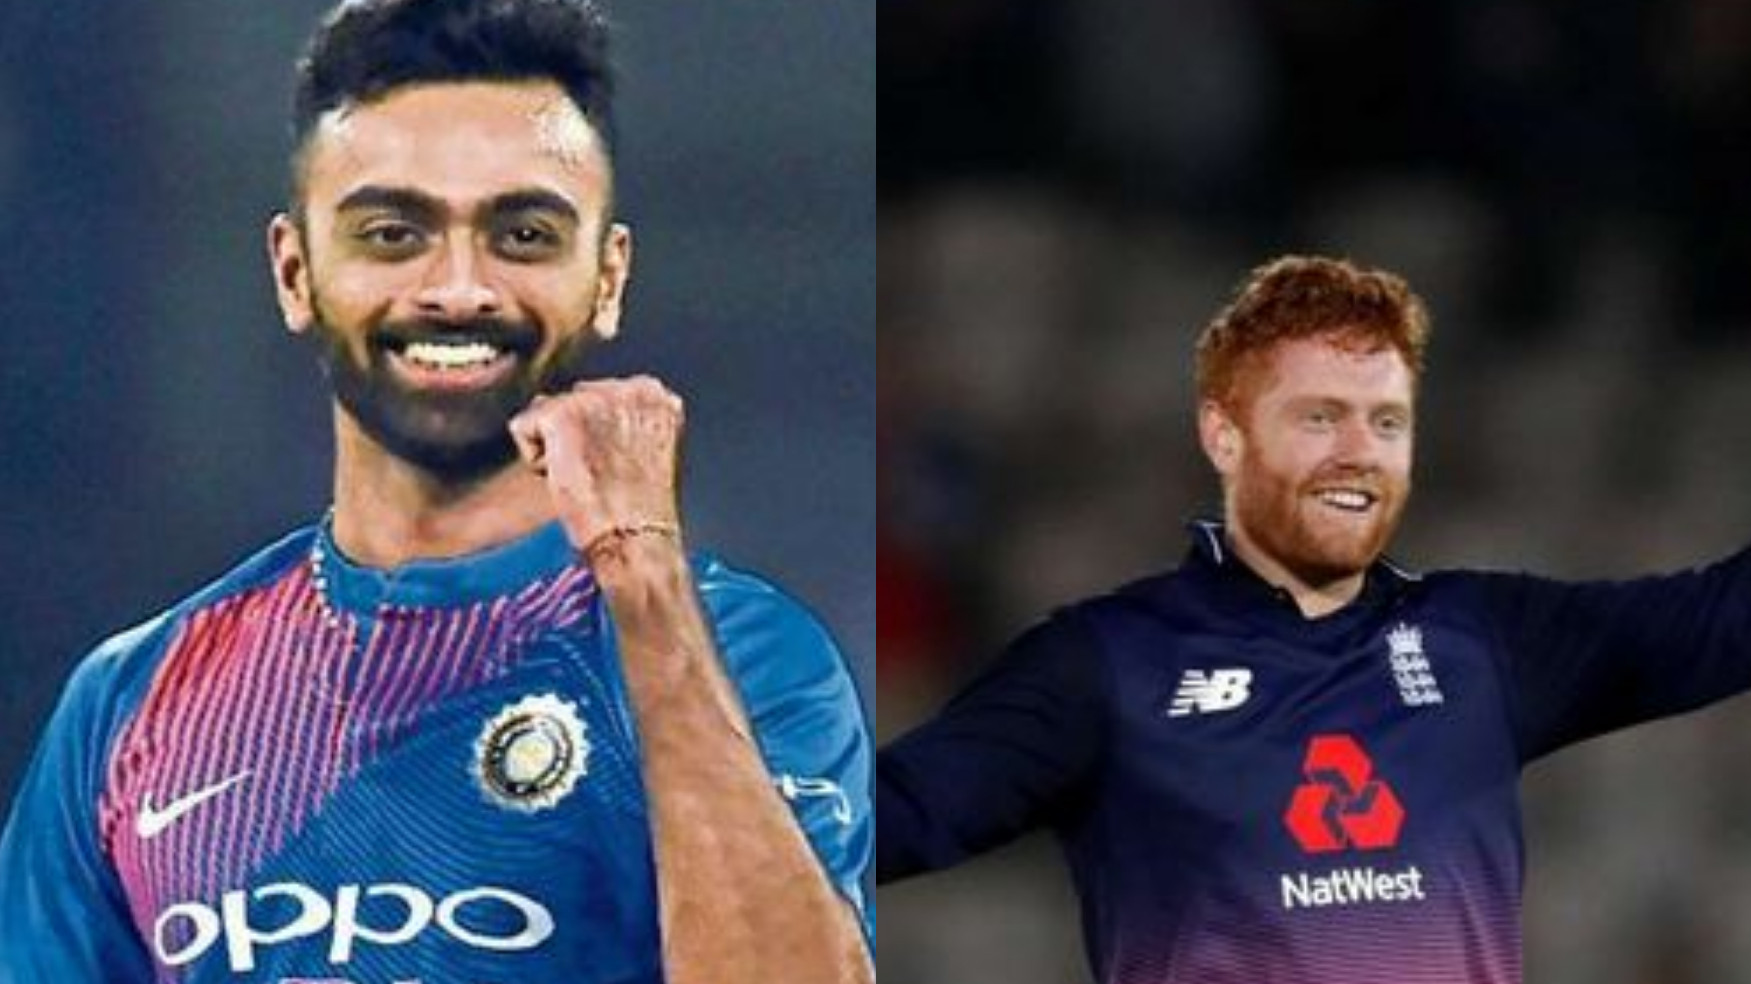 IPL 2019 Auction: Set 3 and 4 – Jaydev Unadkat takes the auction by storm, Jonny Bairstow roped in by SRH